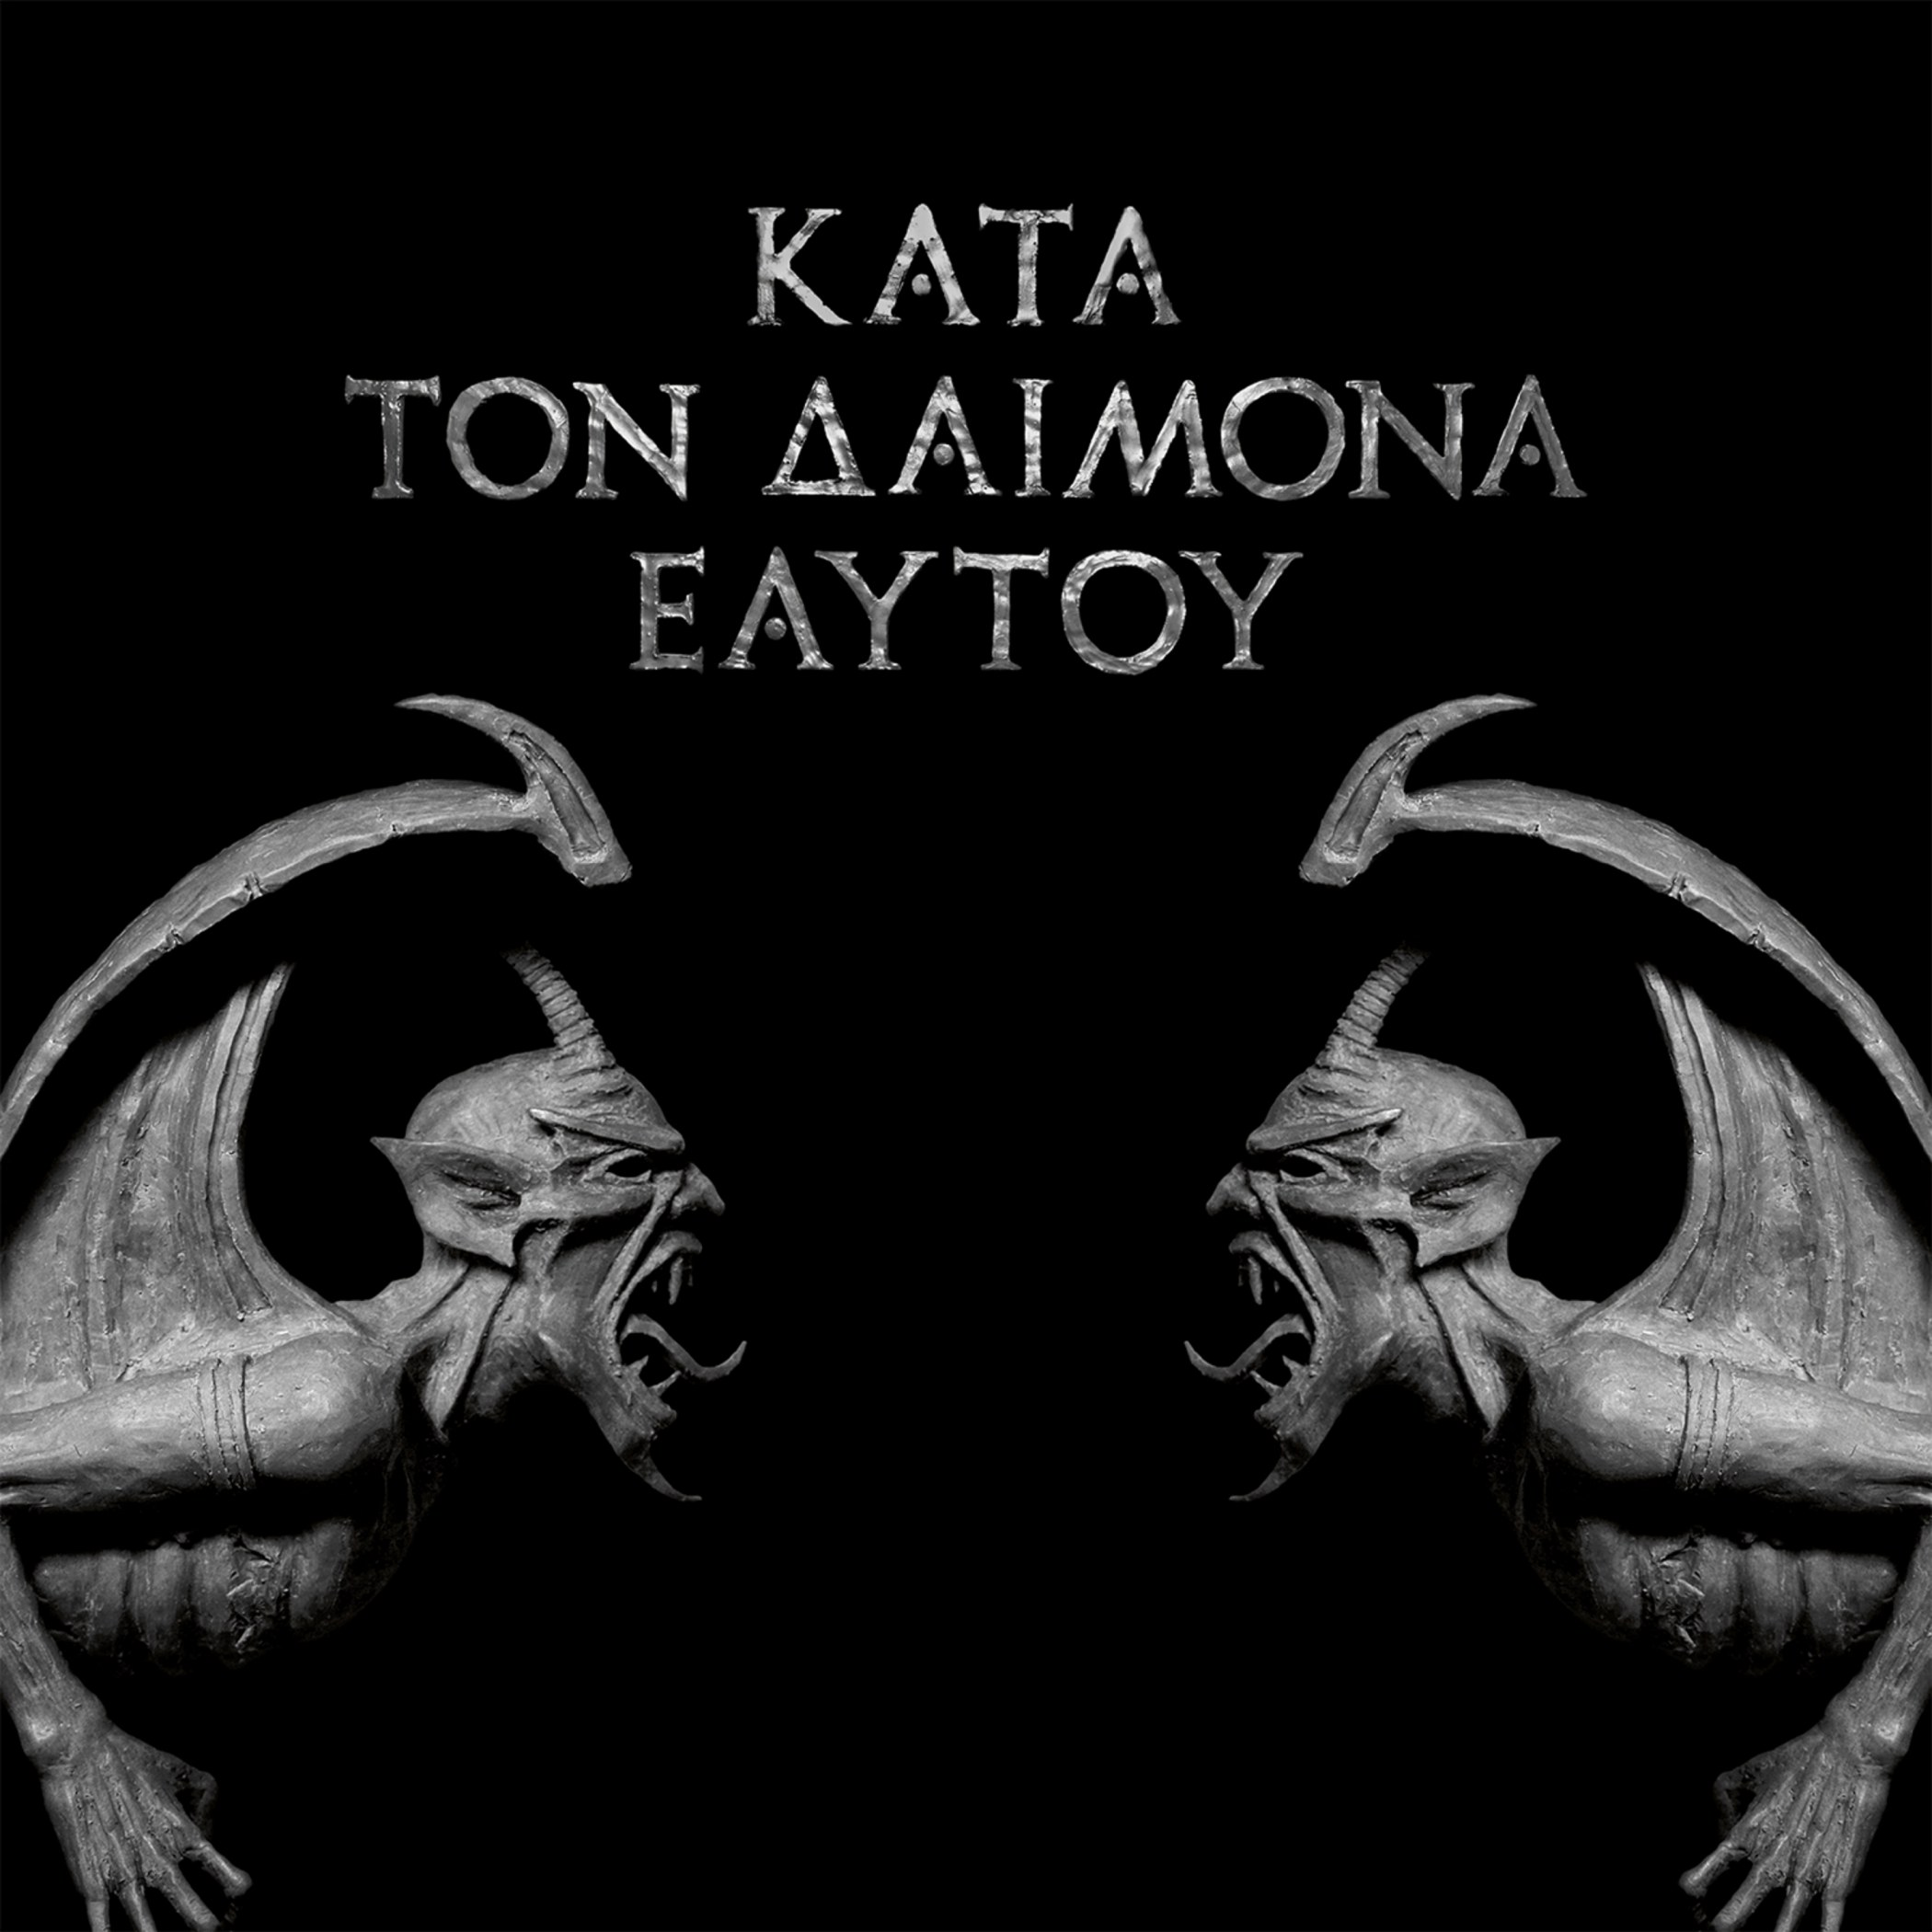 Review for Rotting Christ - Κατά τον δαίμονα εαυτού